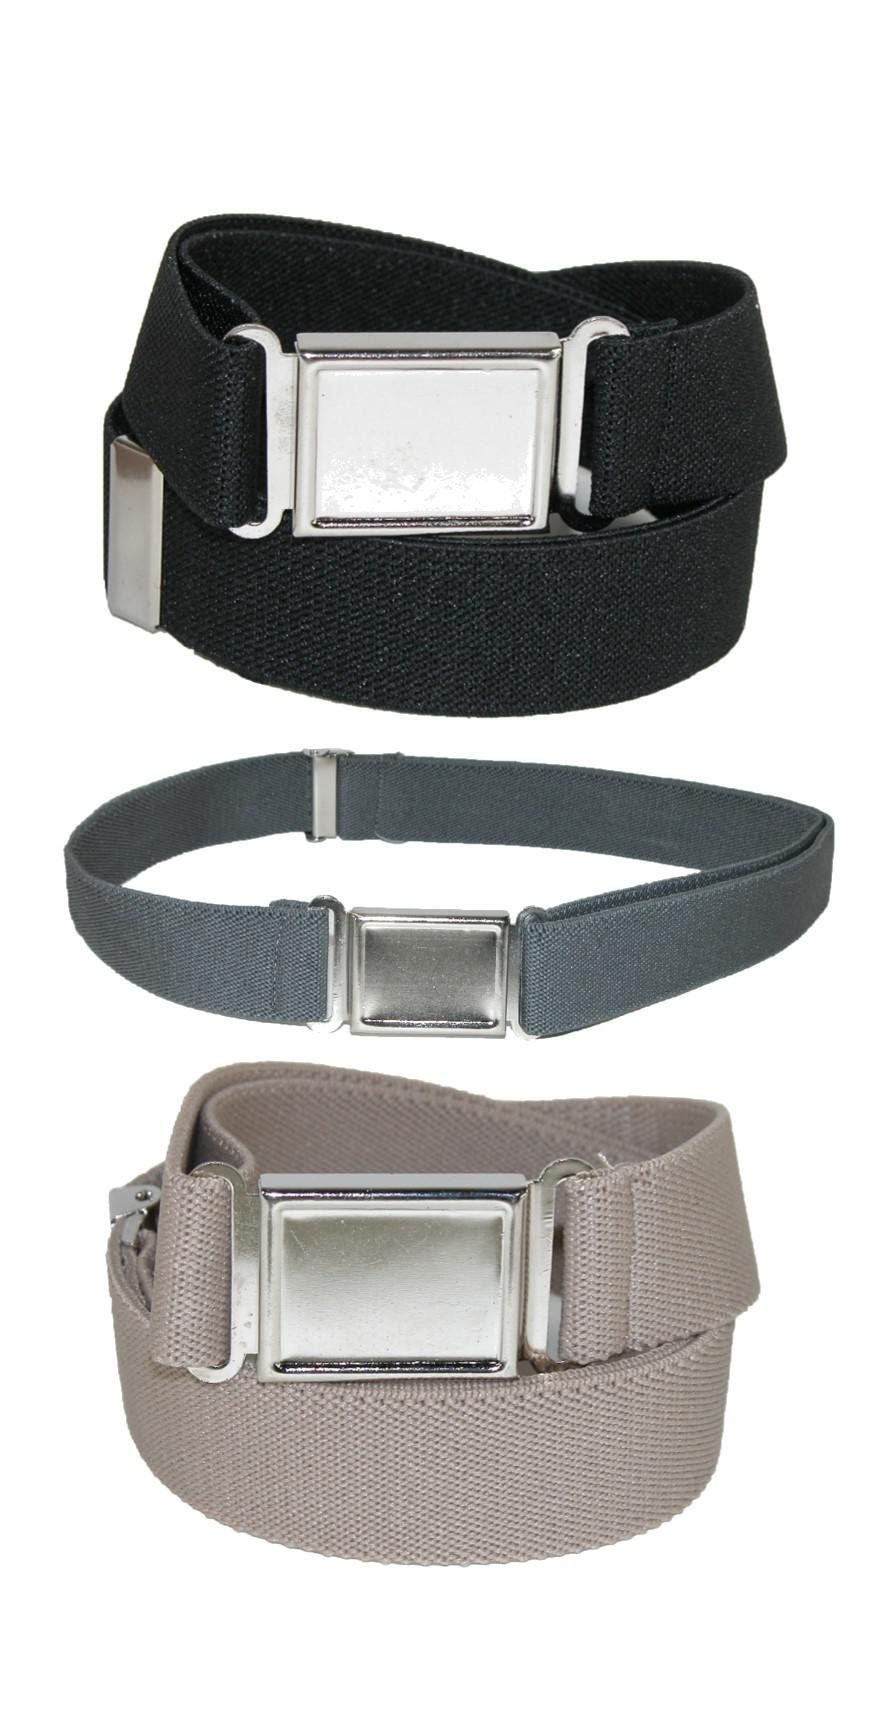 CTM Kids' Elastic Adjustable Belt with Magnetic Buckle (Pack of 3 Colors)